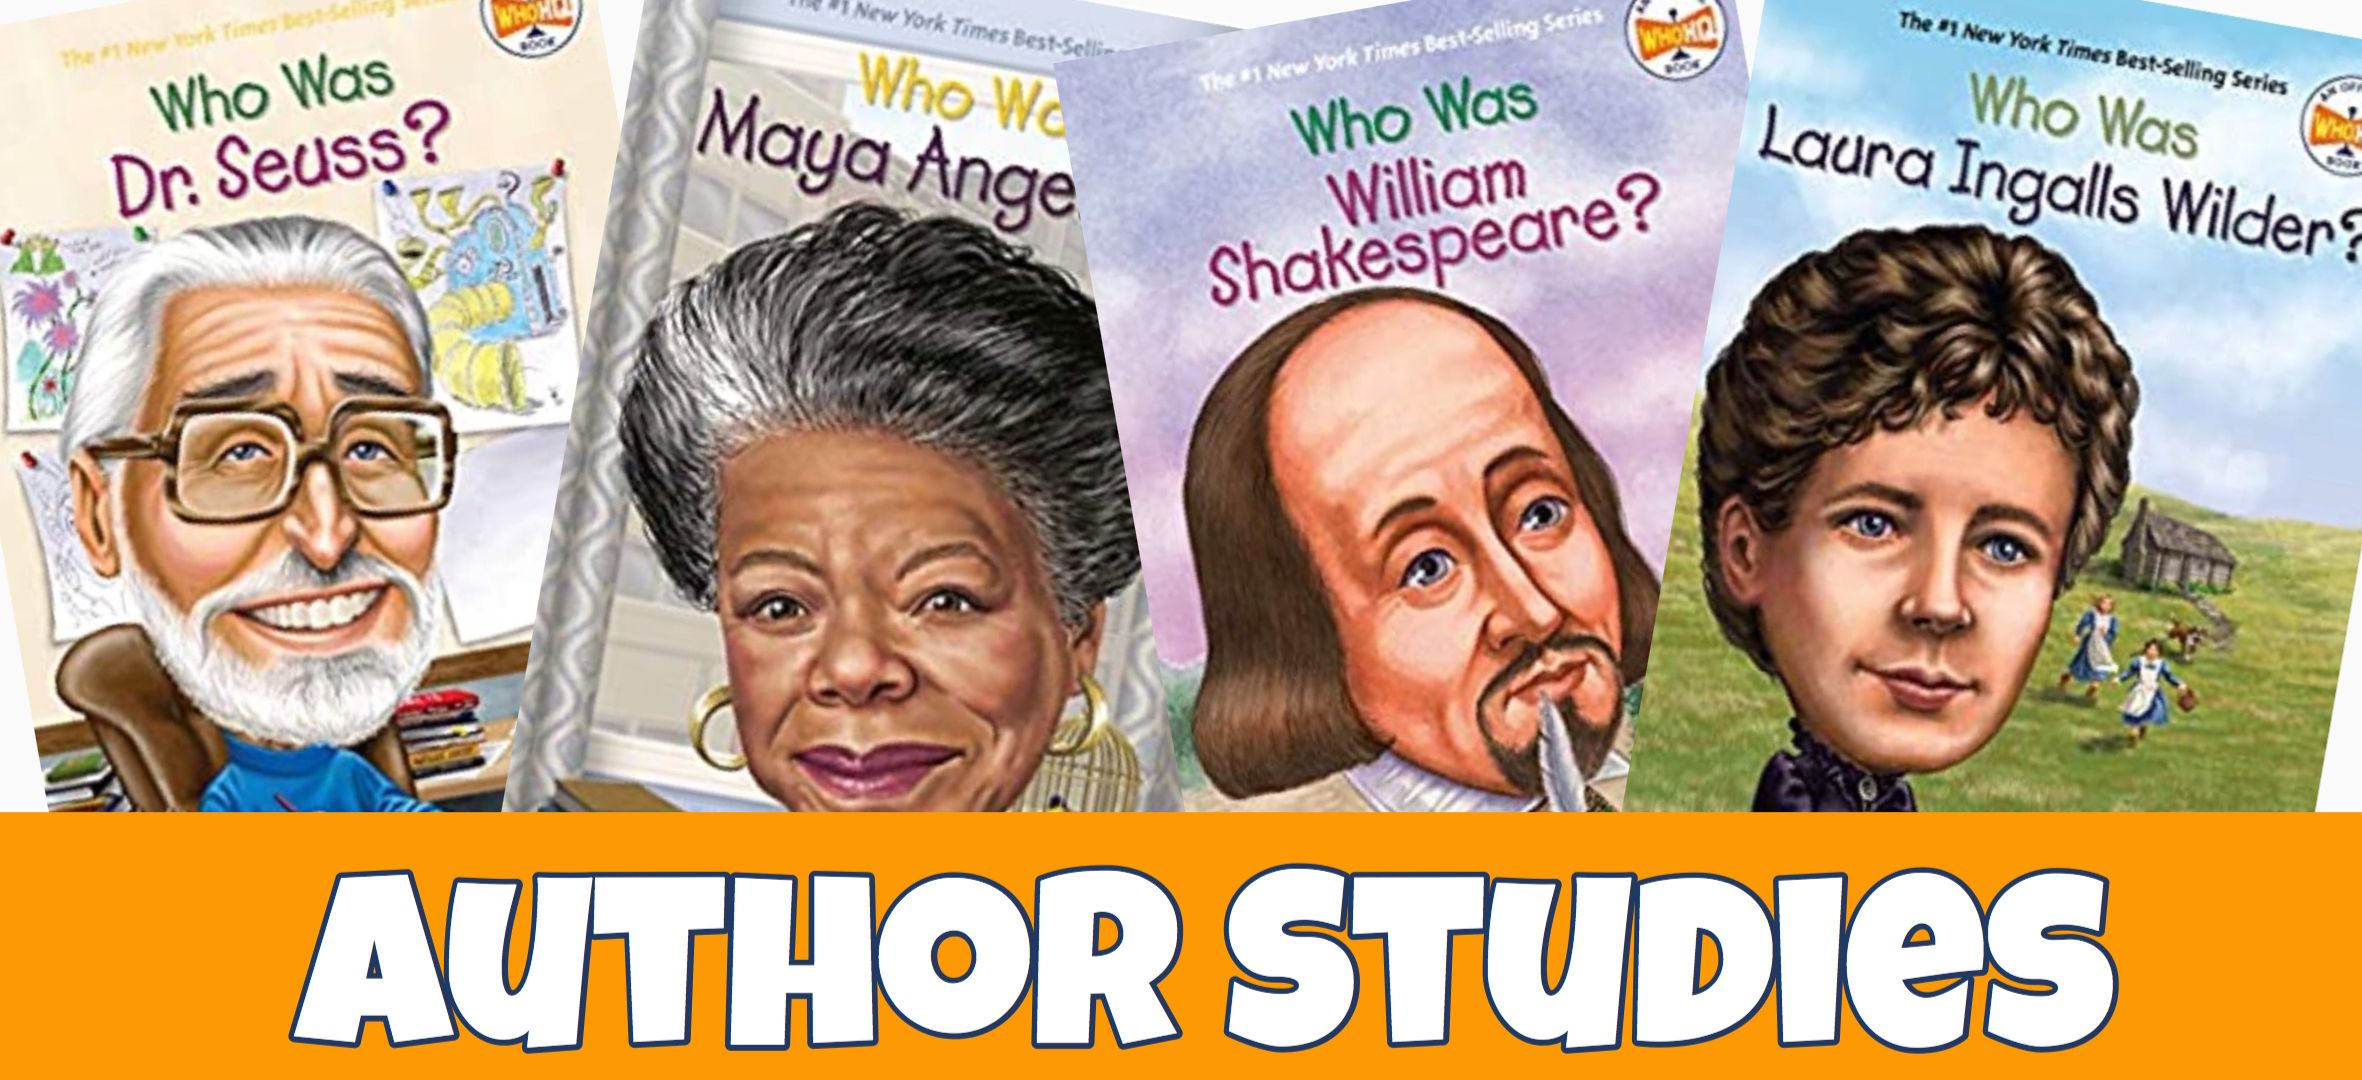 Cover for Author Studies in Your Homeschool showing covers of five biographies of authors.